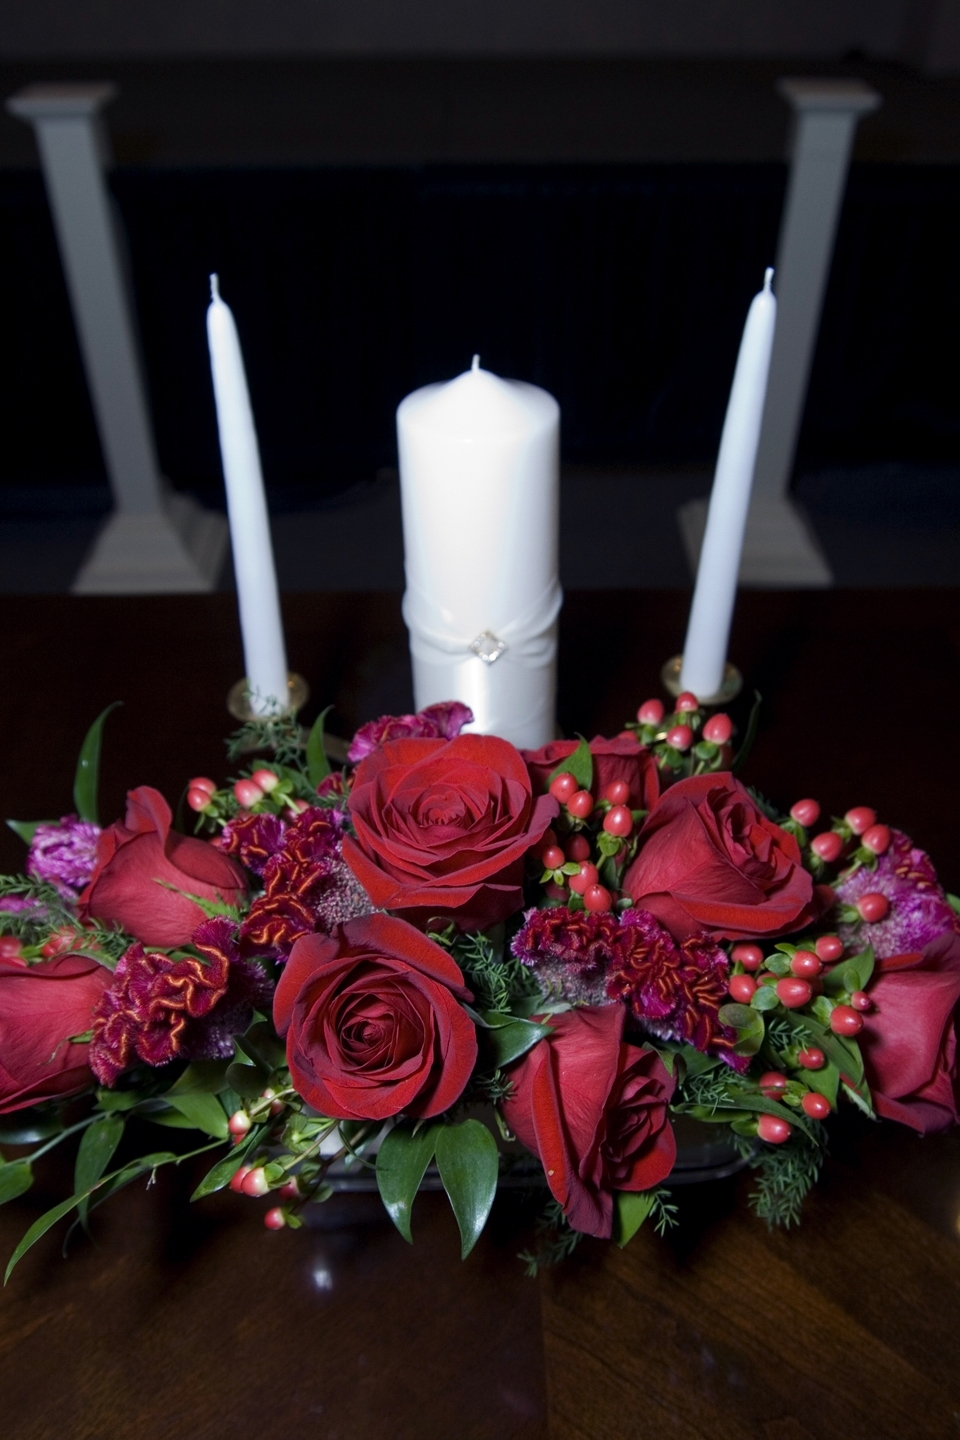 Flowers & Decor, red, Flowers, Roses, Unity candle